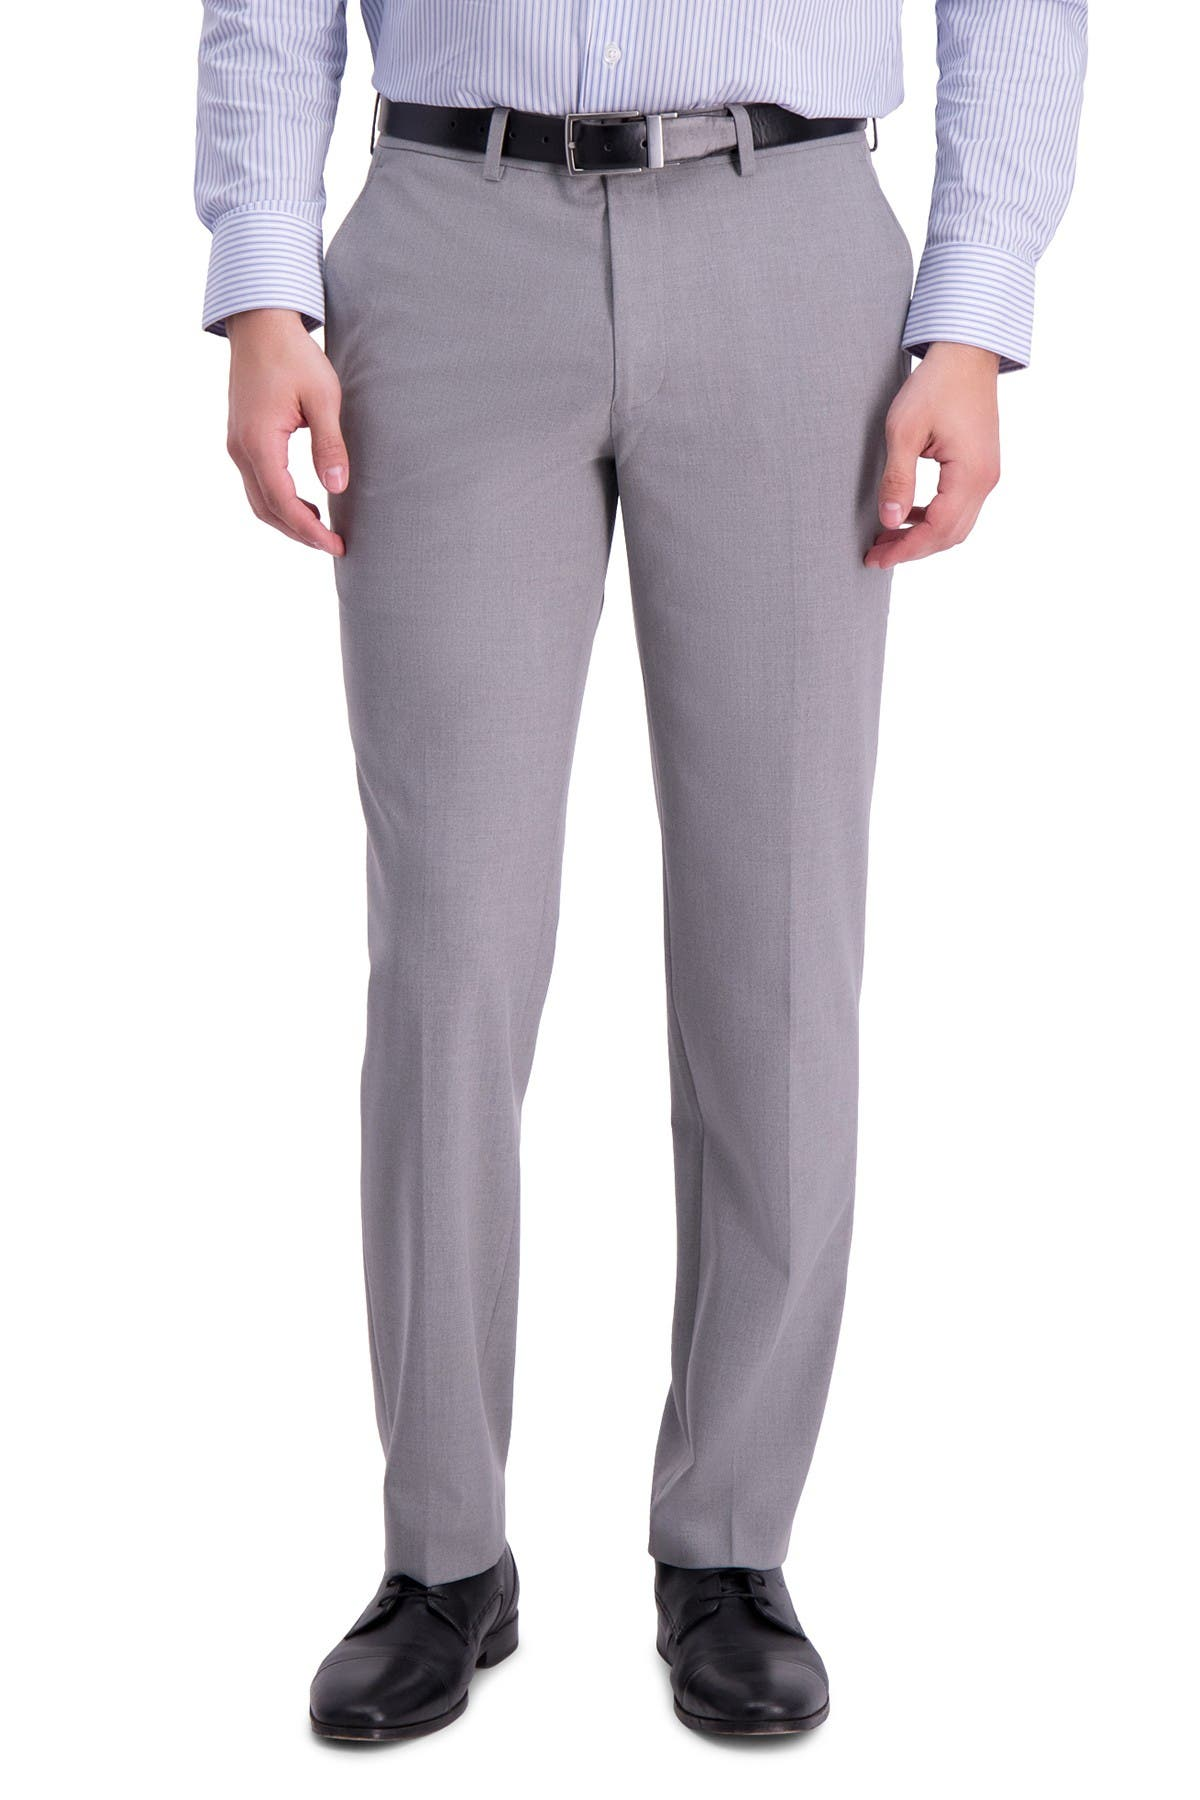 Image of Louis Raphael Solid Flat Front Skinny Fit Dress Pants